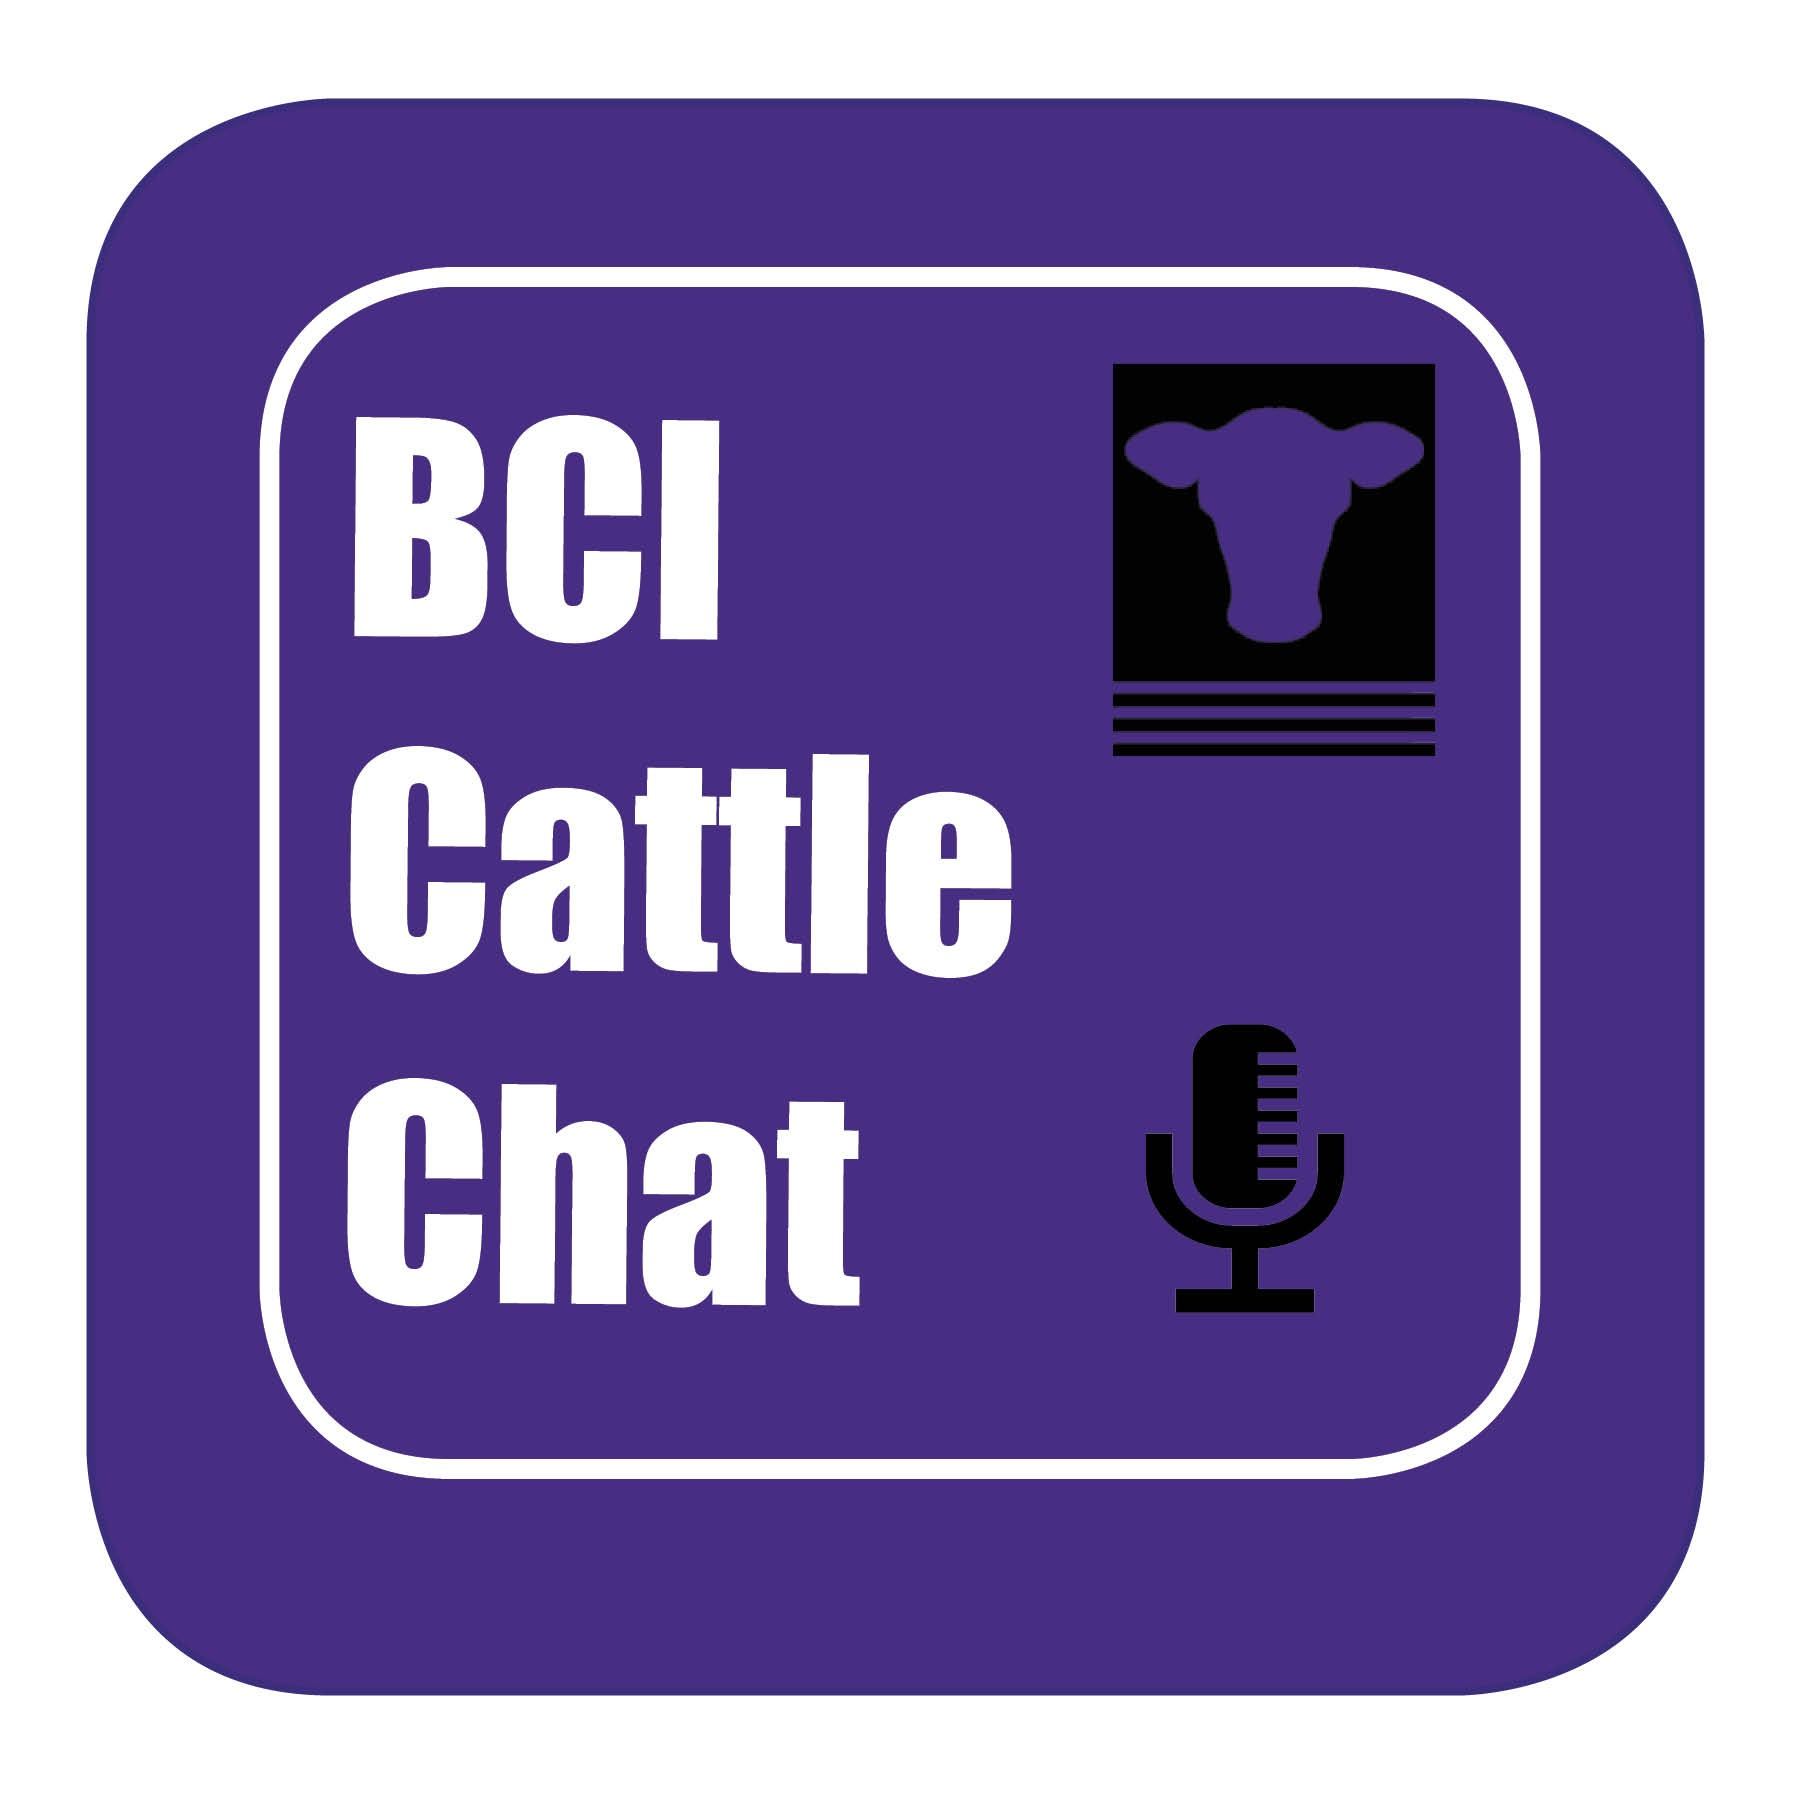 BCI Cattle Chat - Episode 43